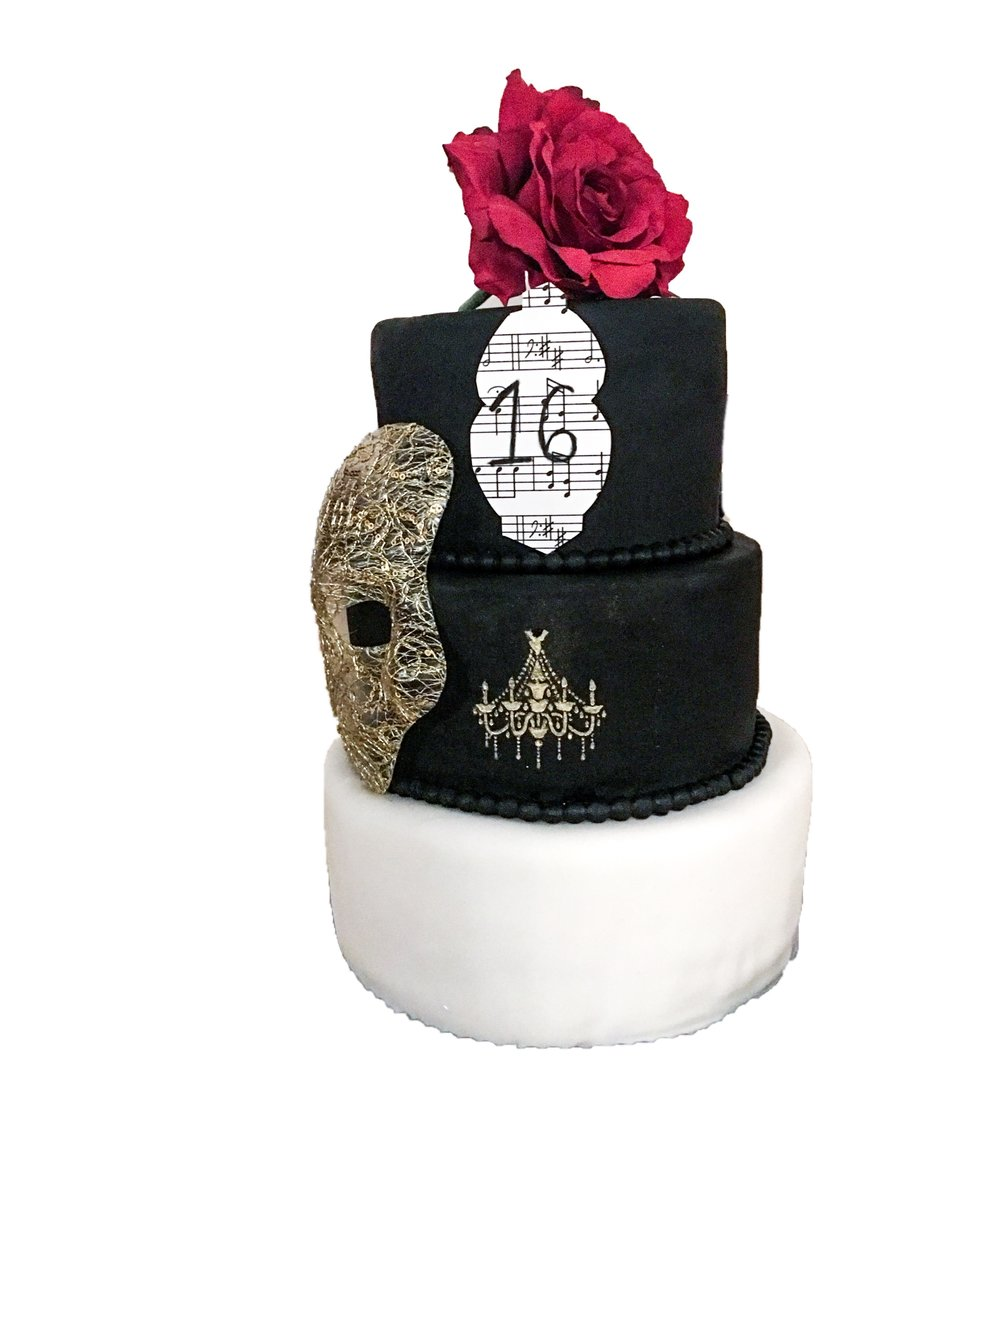 Phantom of the Opera Mask Cake